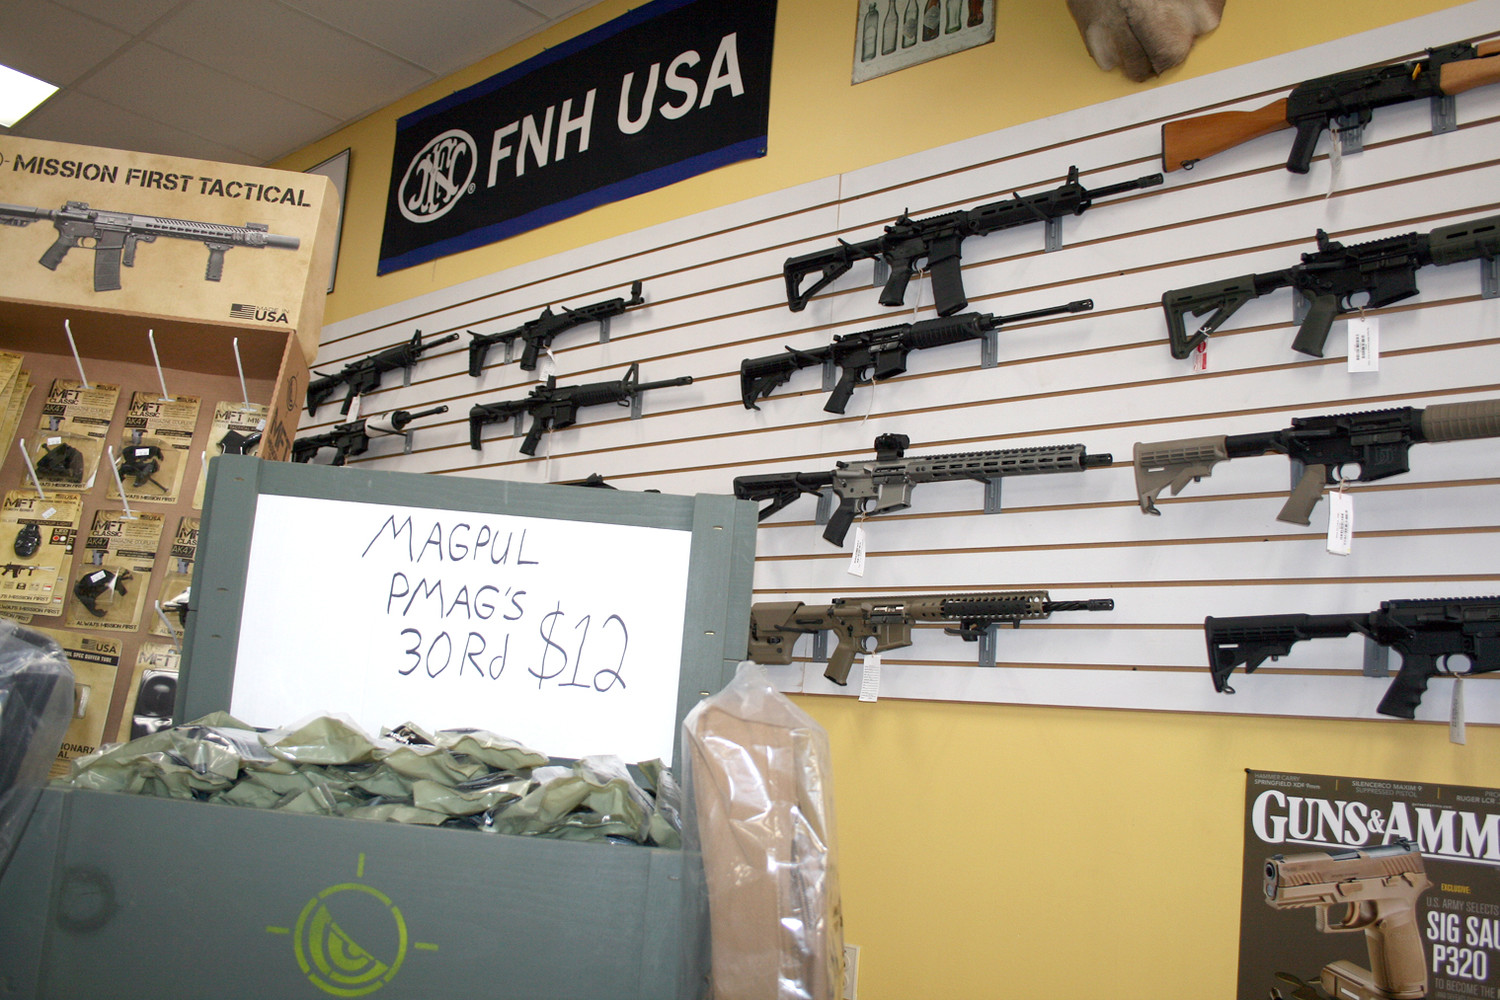 A WIDE VARIETY of firearms are displayed on the wall of Posey's Gun and Pawn shop on Keith Street. Business has increased recently with news of multiple tragedies, debates on gun control, and people looking for protection options.